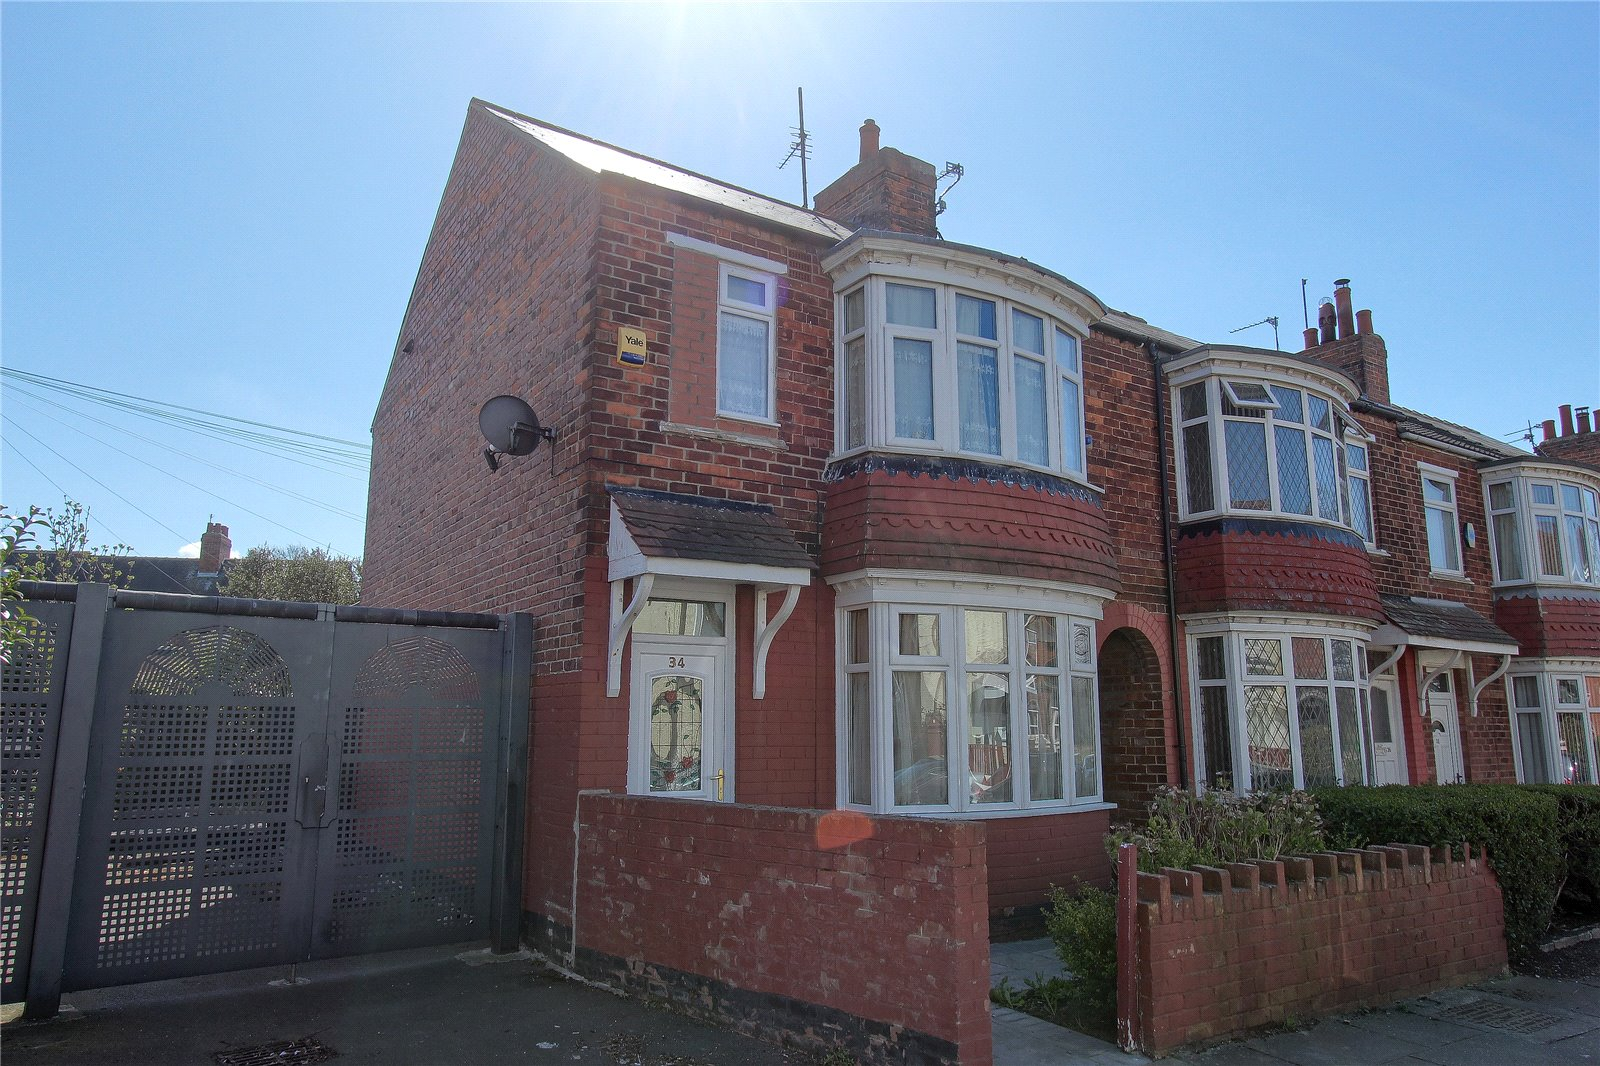 2 bed house for sale in Newstead Road, Middlesbrough - Property Image 1